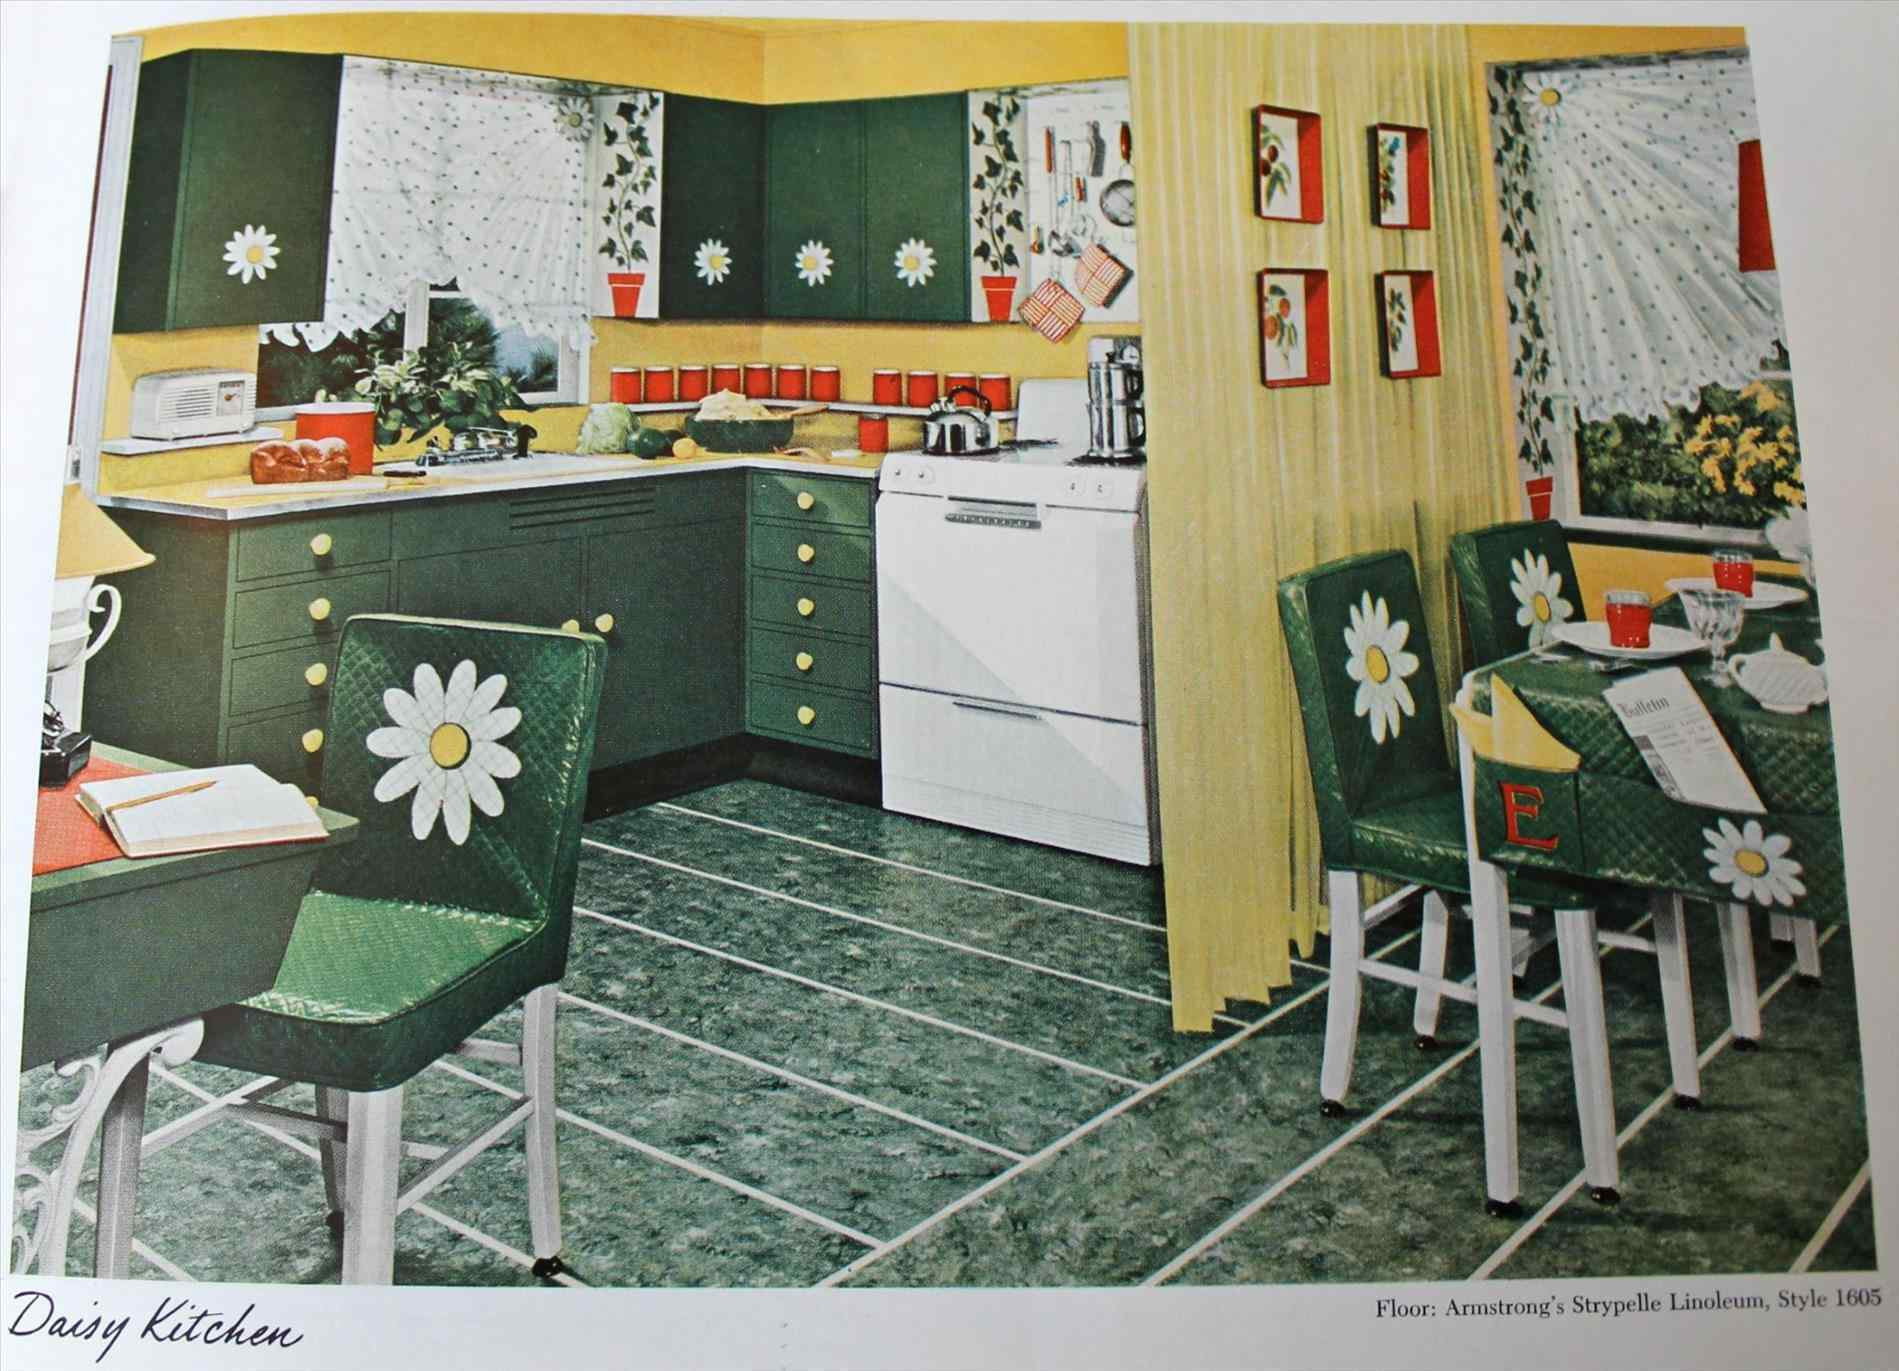 Best ideas about Daisy Kitchen Decorations . Save or Pin Daisy Kitchen Decor Now.